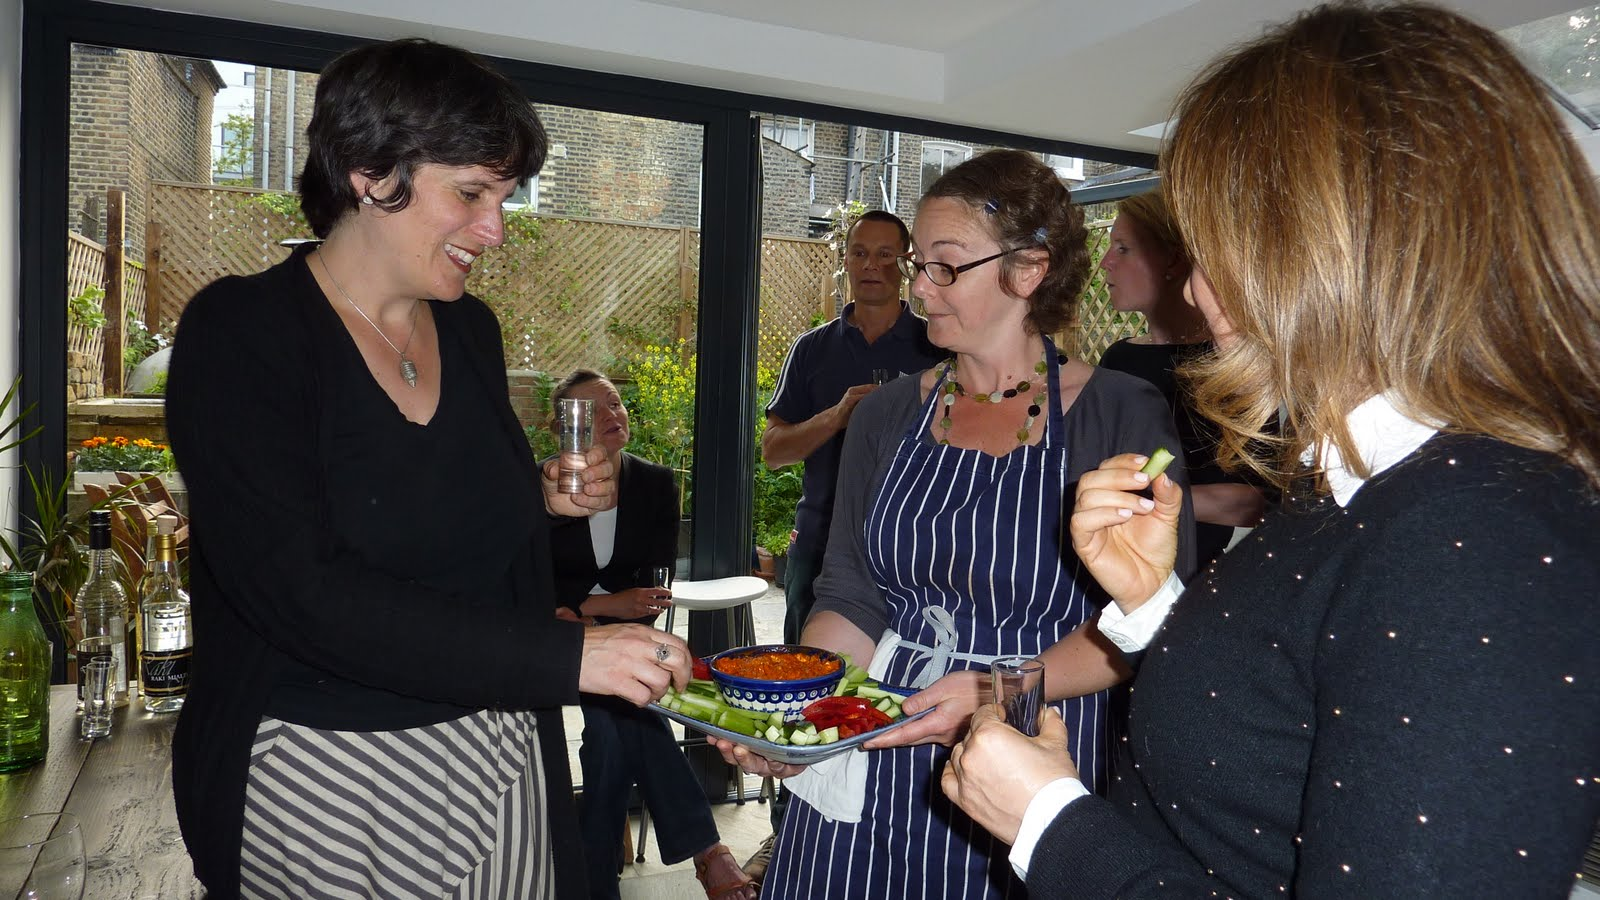 To celebrate the launch of Elizabeth Gowing's new book, Culinary Anthropologist Anna Colquhoun showed you how to cook some of the recipes featured in her book. 5th May 2011.